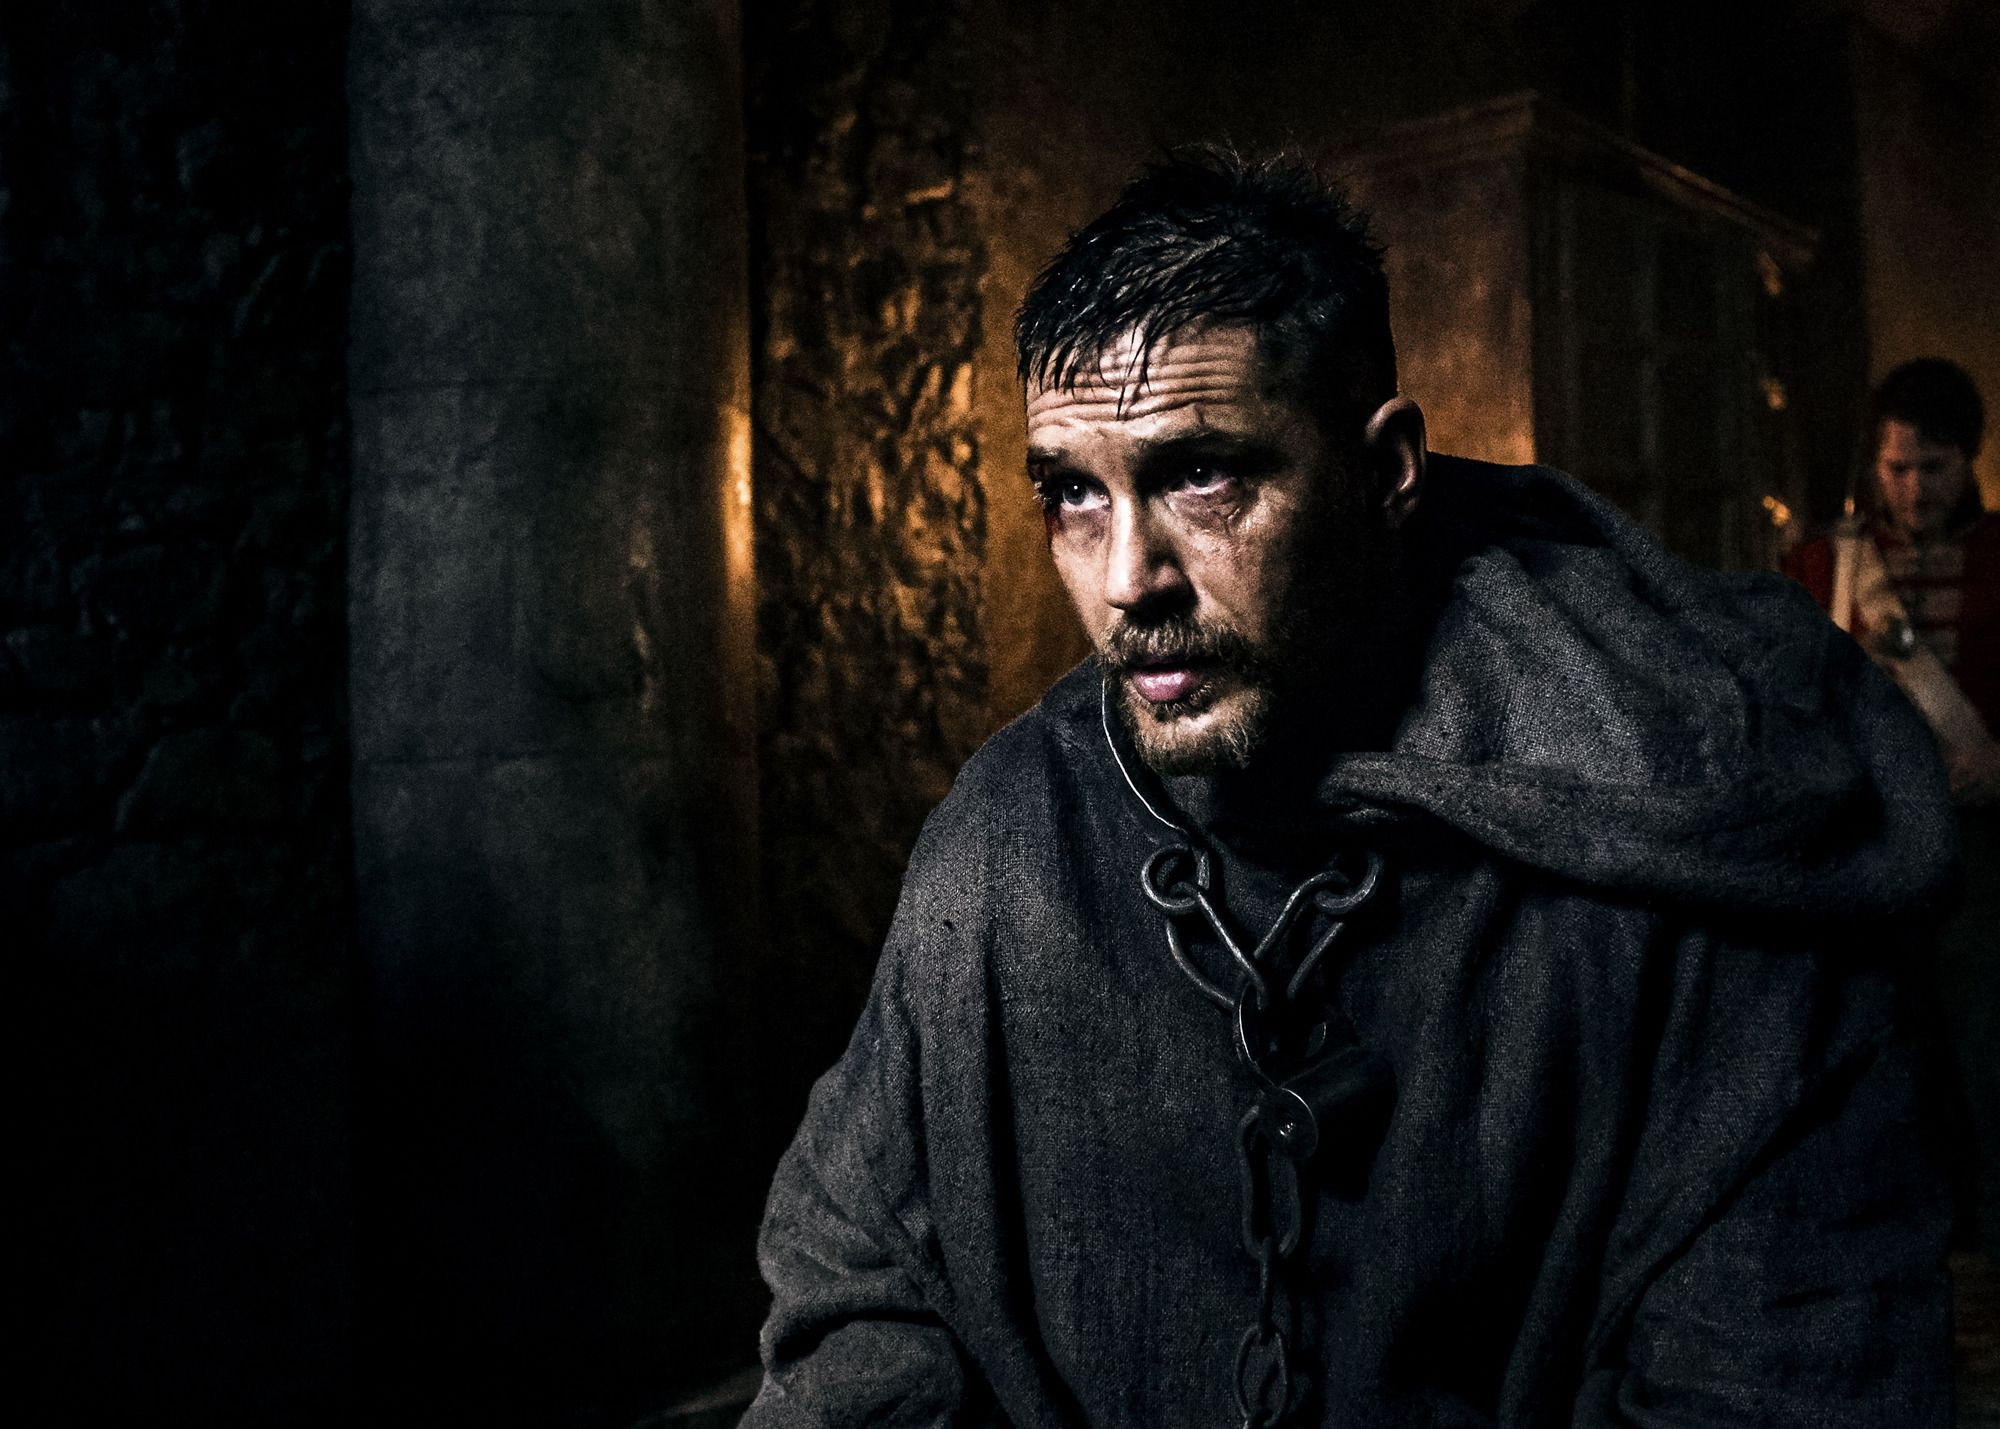 Taboo Season 2 Release Date Cast Plot Trailer And Upcoming Details About Next Season The Global Coverage See what taboo2z (taboo2z) found on we heart it, your everyday app to get lost in what you love. taboo season 2 release date cast plot